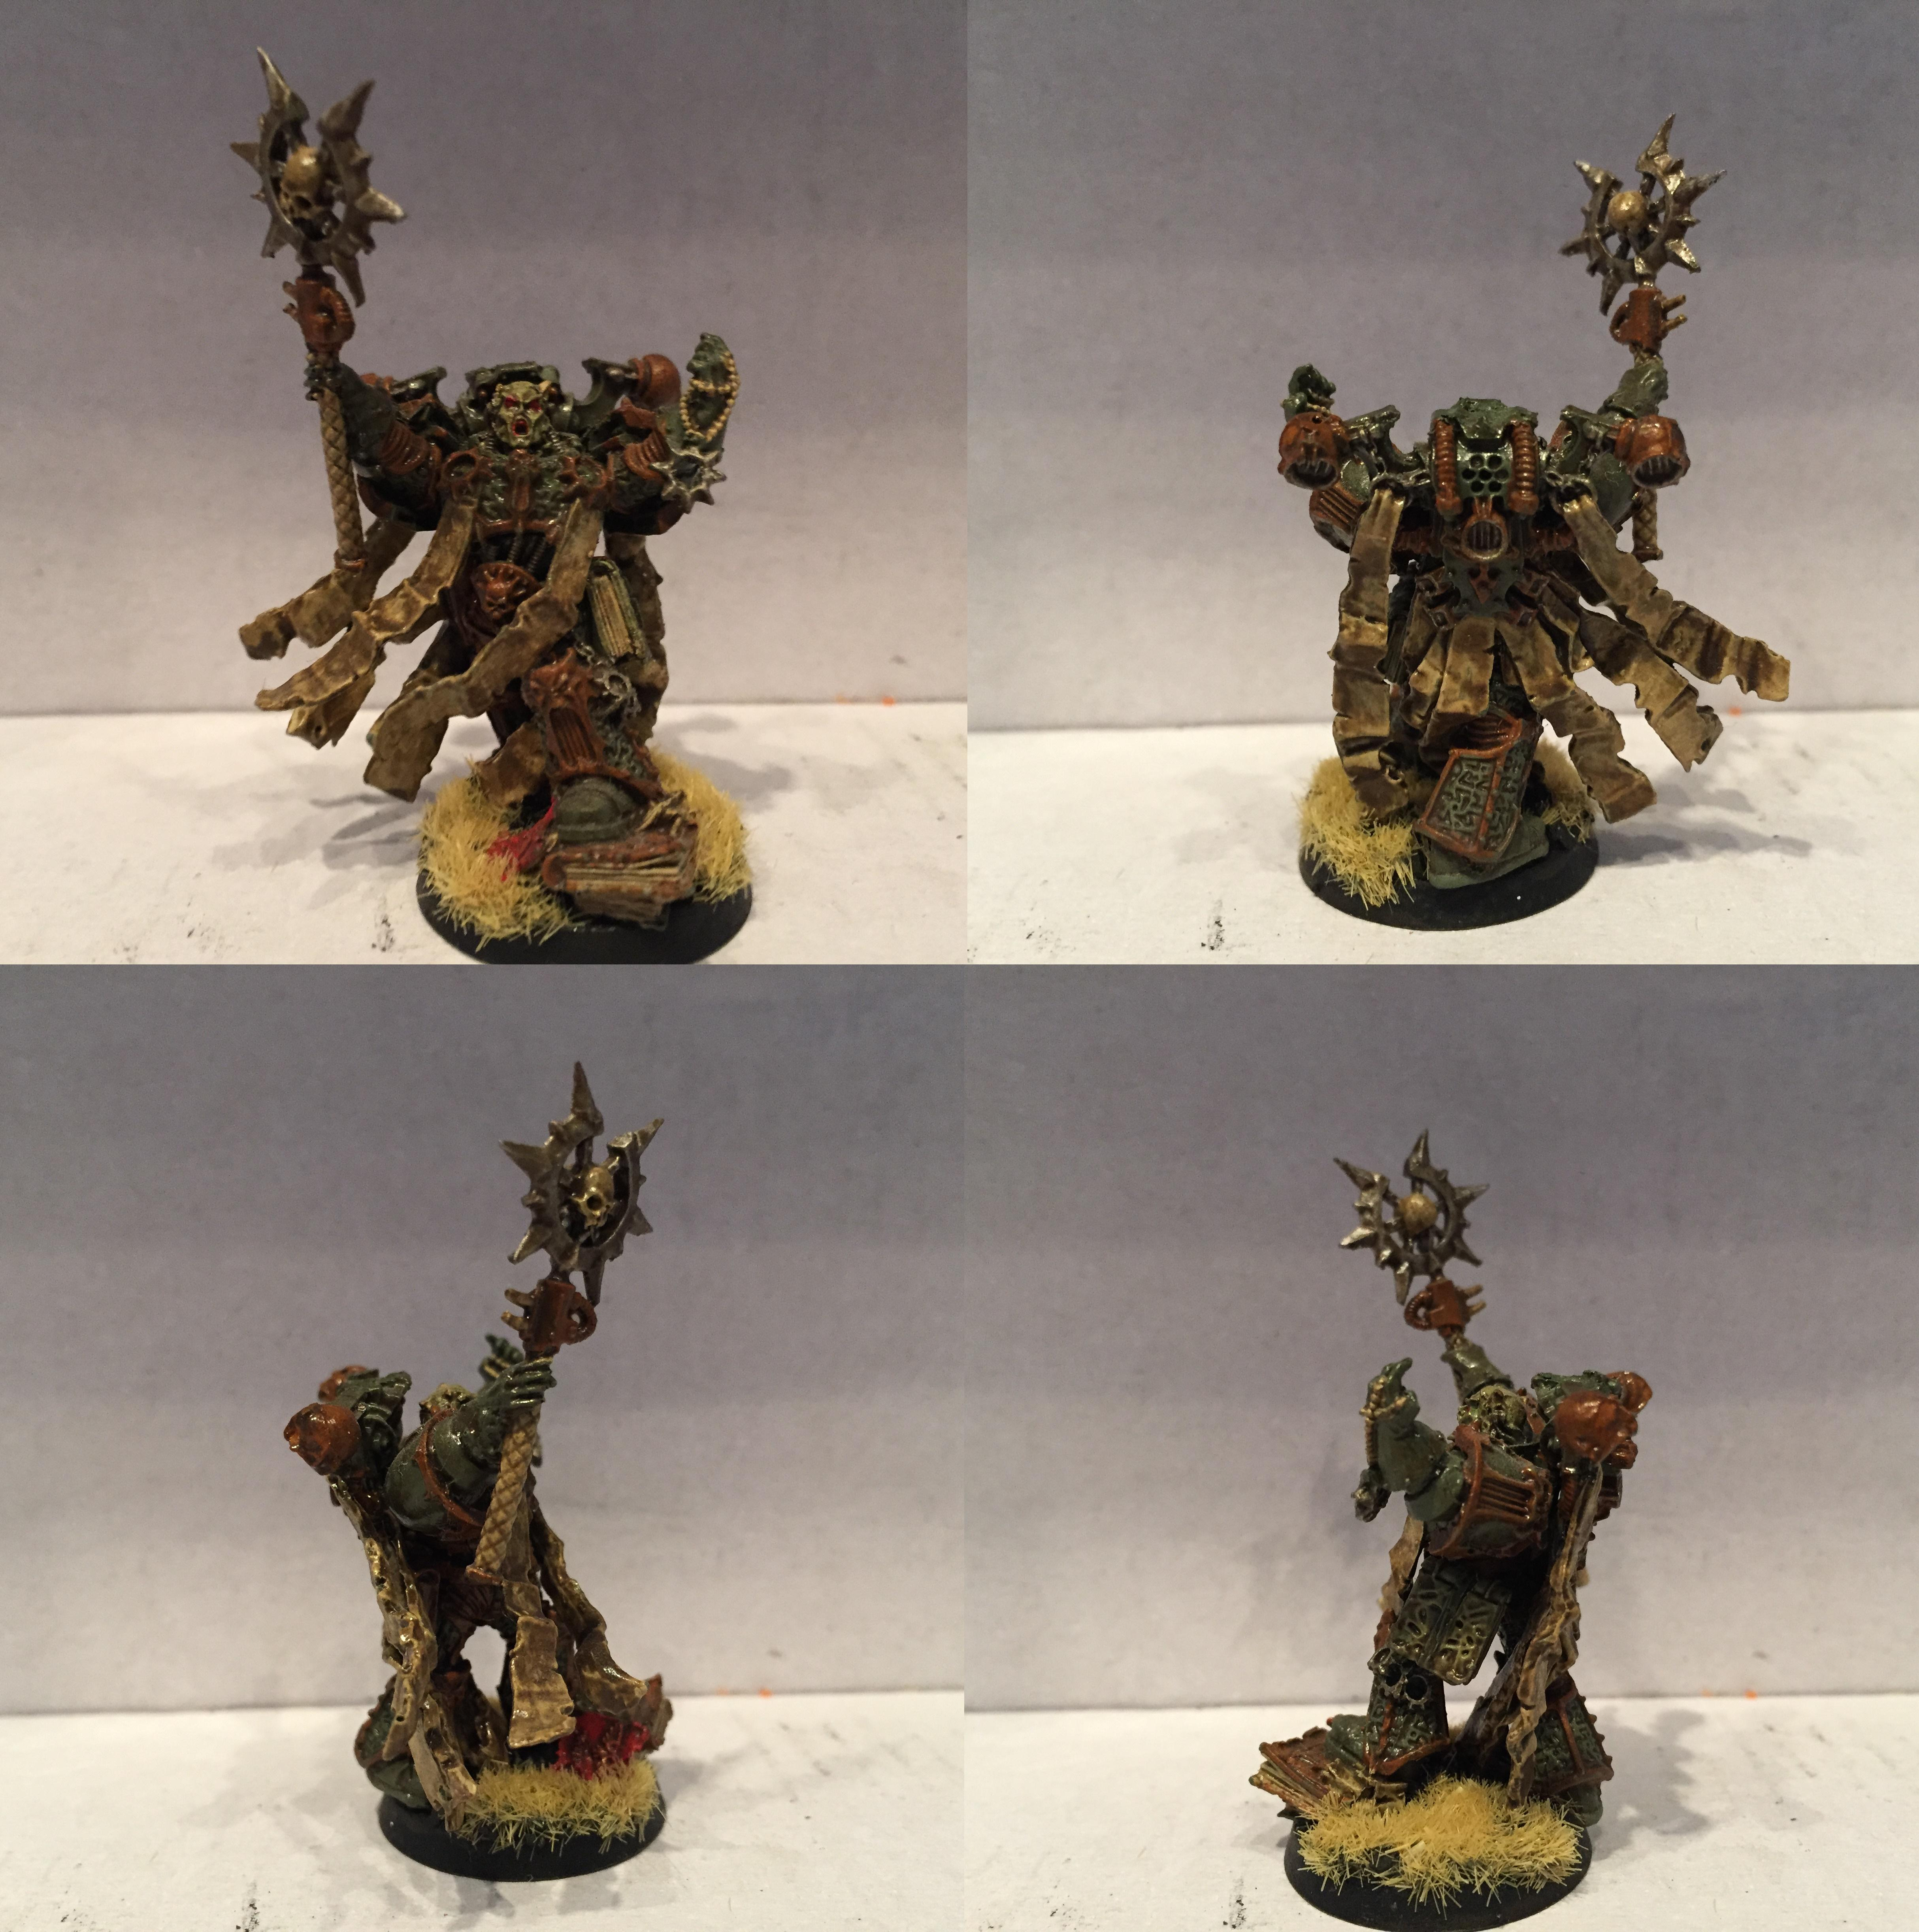 Apostle, Chaos, Chaos Space Marines, Dipped, Nurgle, Petrifications, Warhammer 40,000